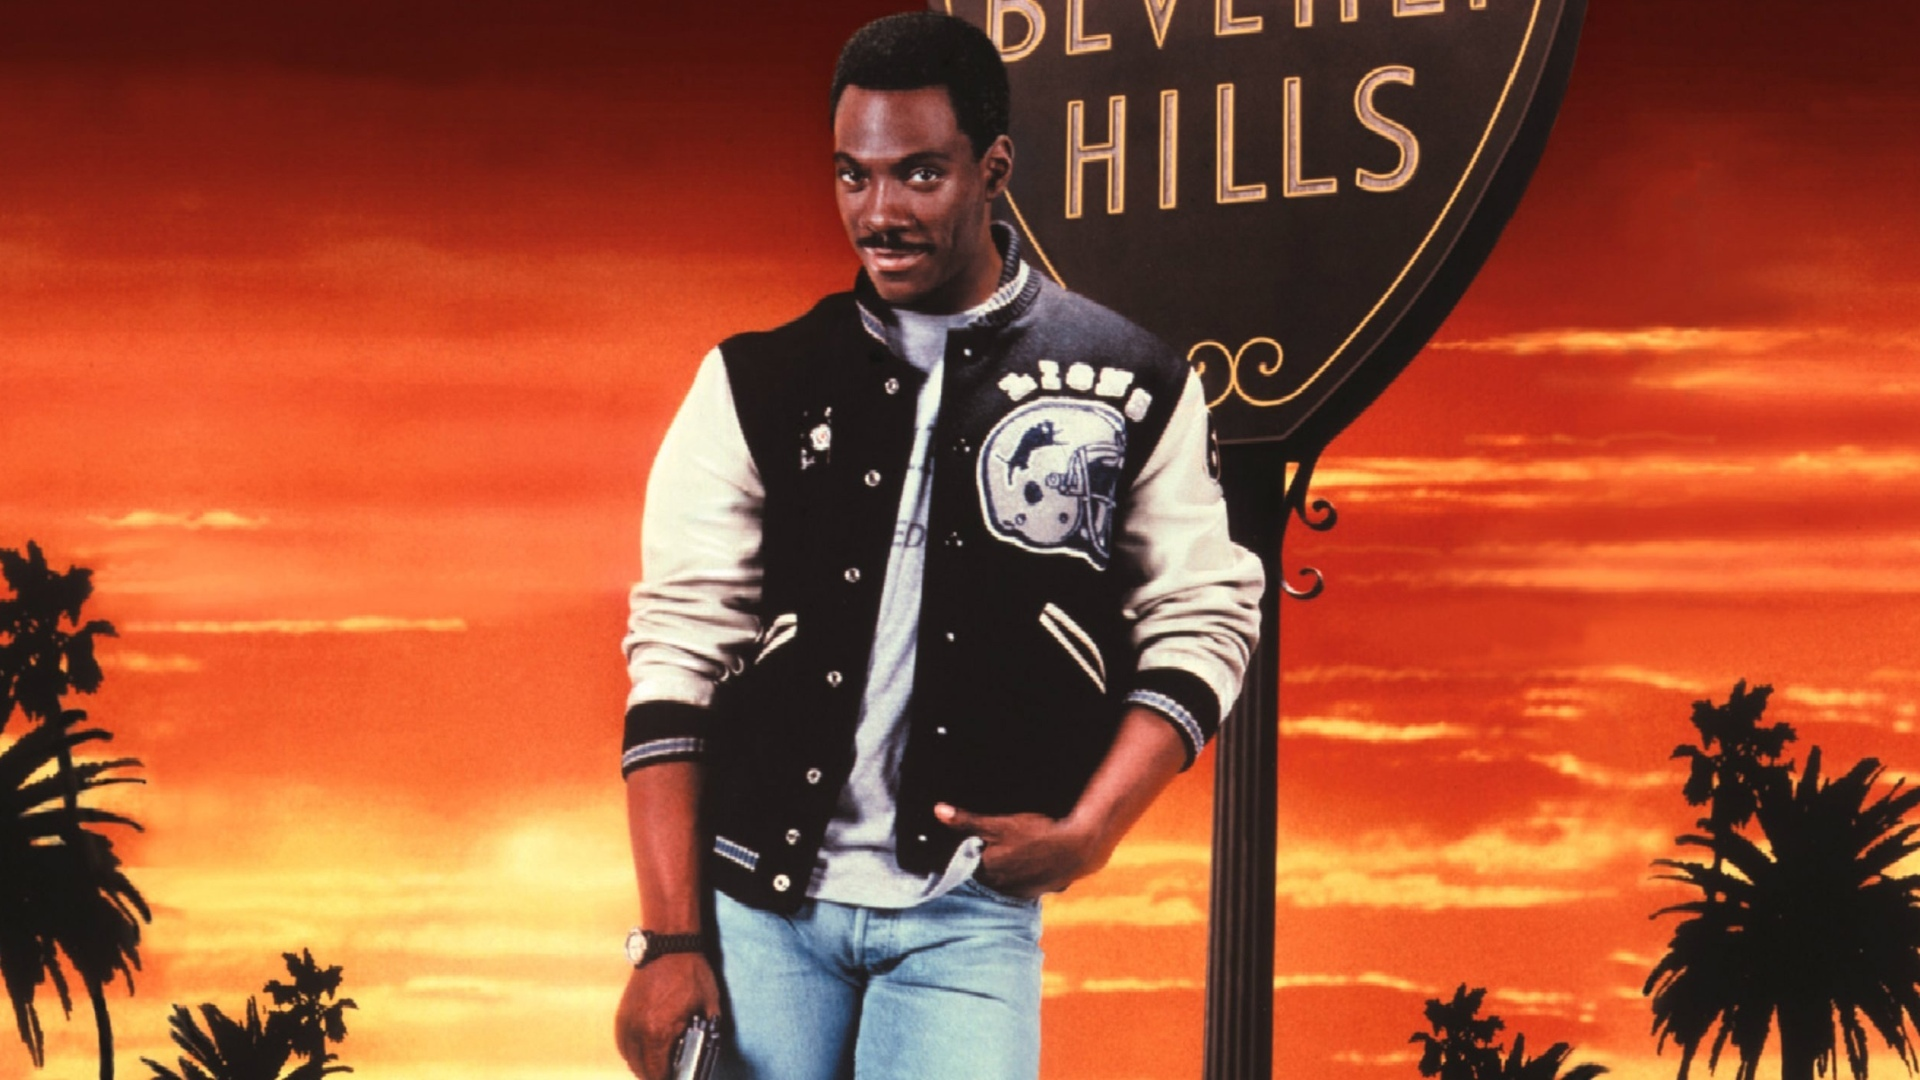 Beverly Hills Cop Images Photos HD Wallpaper And Background